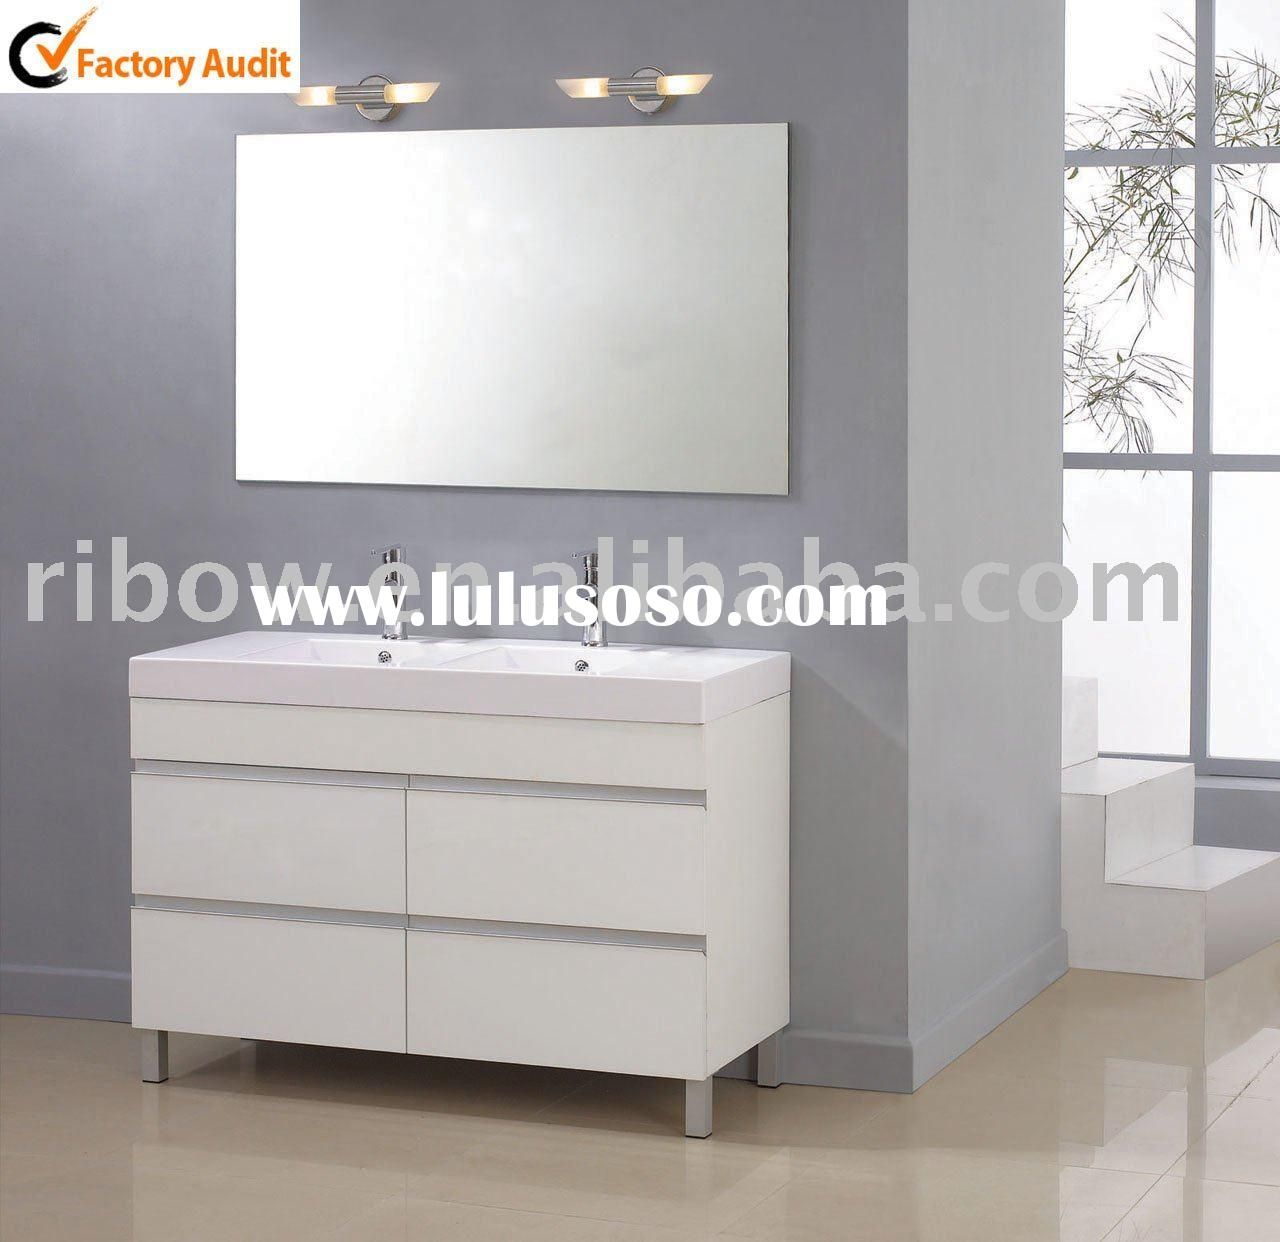 Wall Mounted Bathroom Cabinets White Gloss Crowdsmachine Com